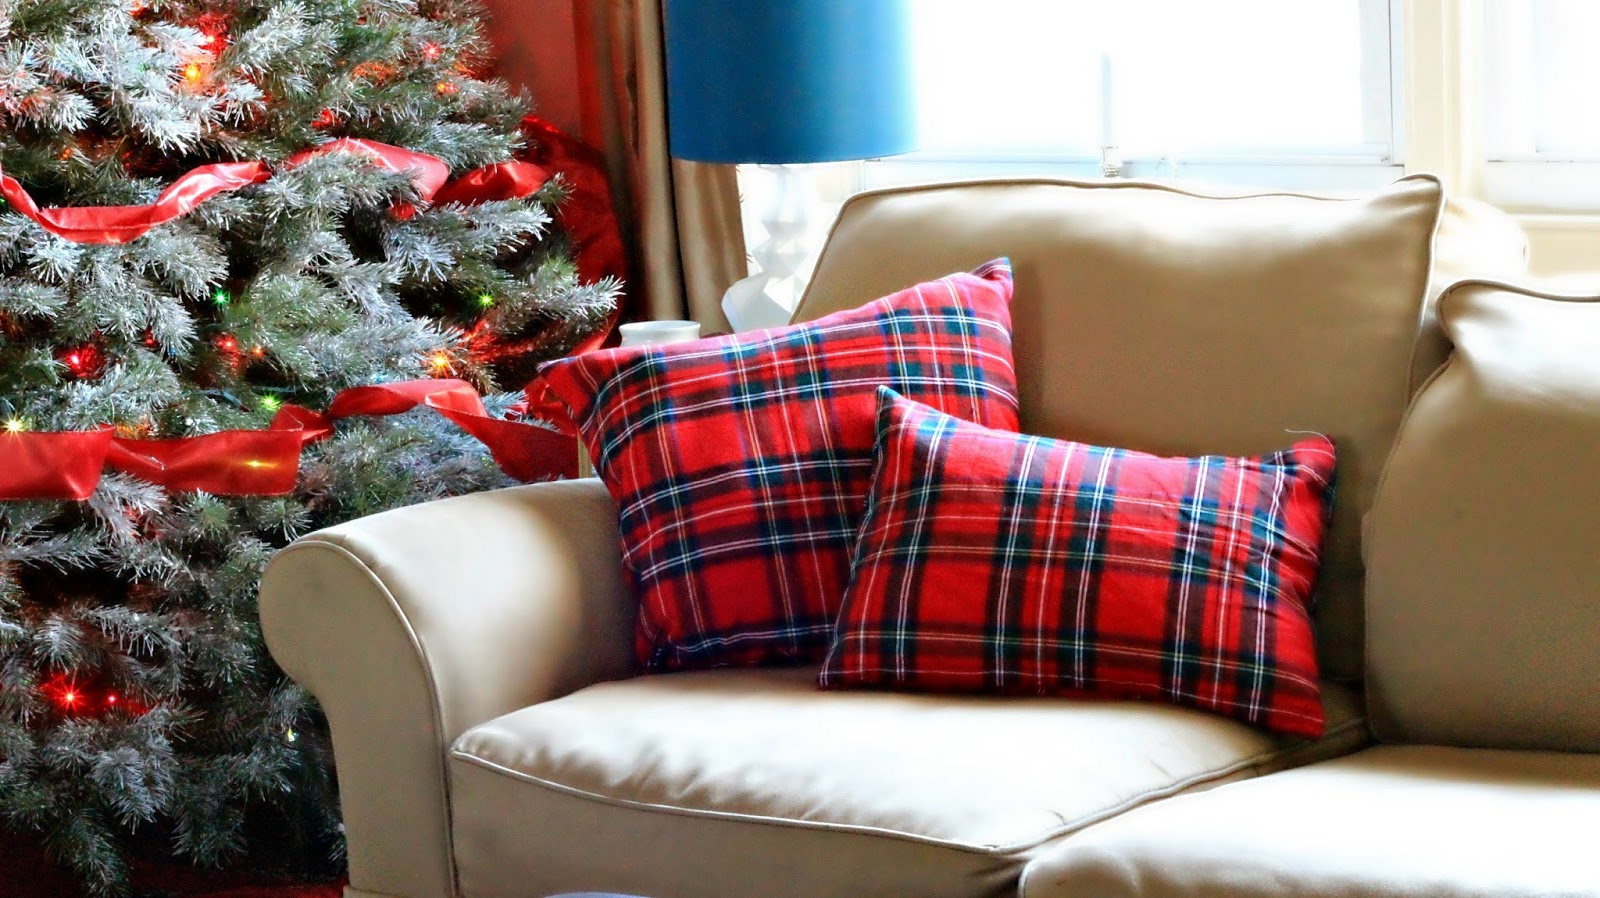 Living Rooms With Plaid Pillows: 10 Ideas For Using Plaid In Your Home   Days of Chalk and Chocolate,